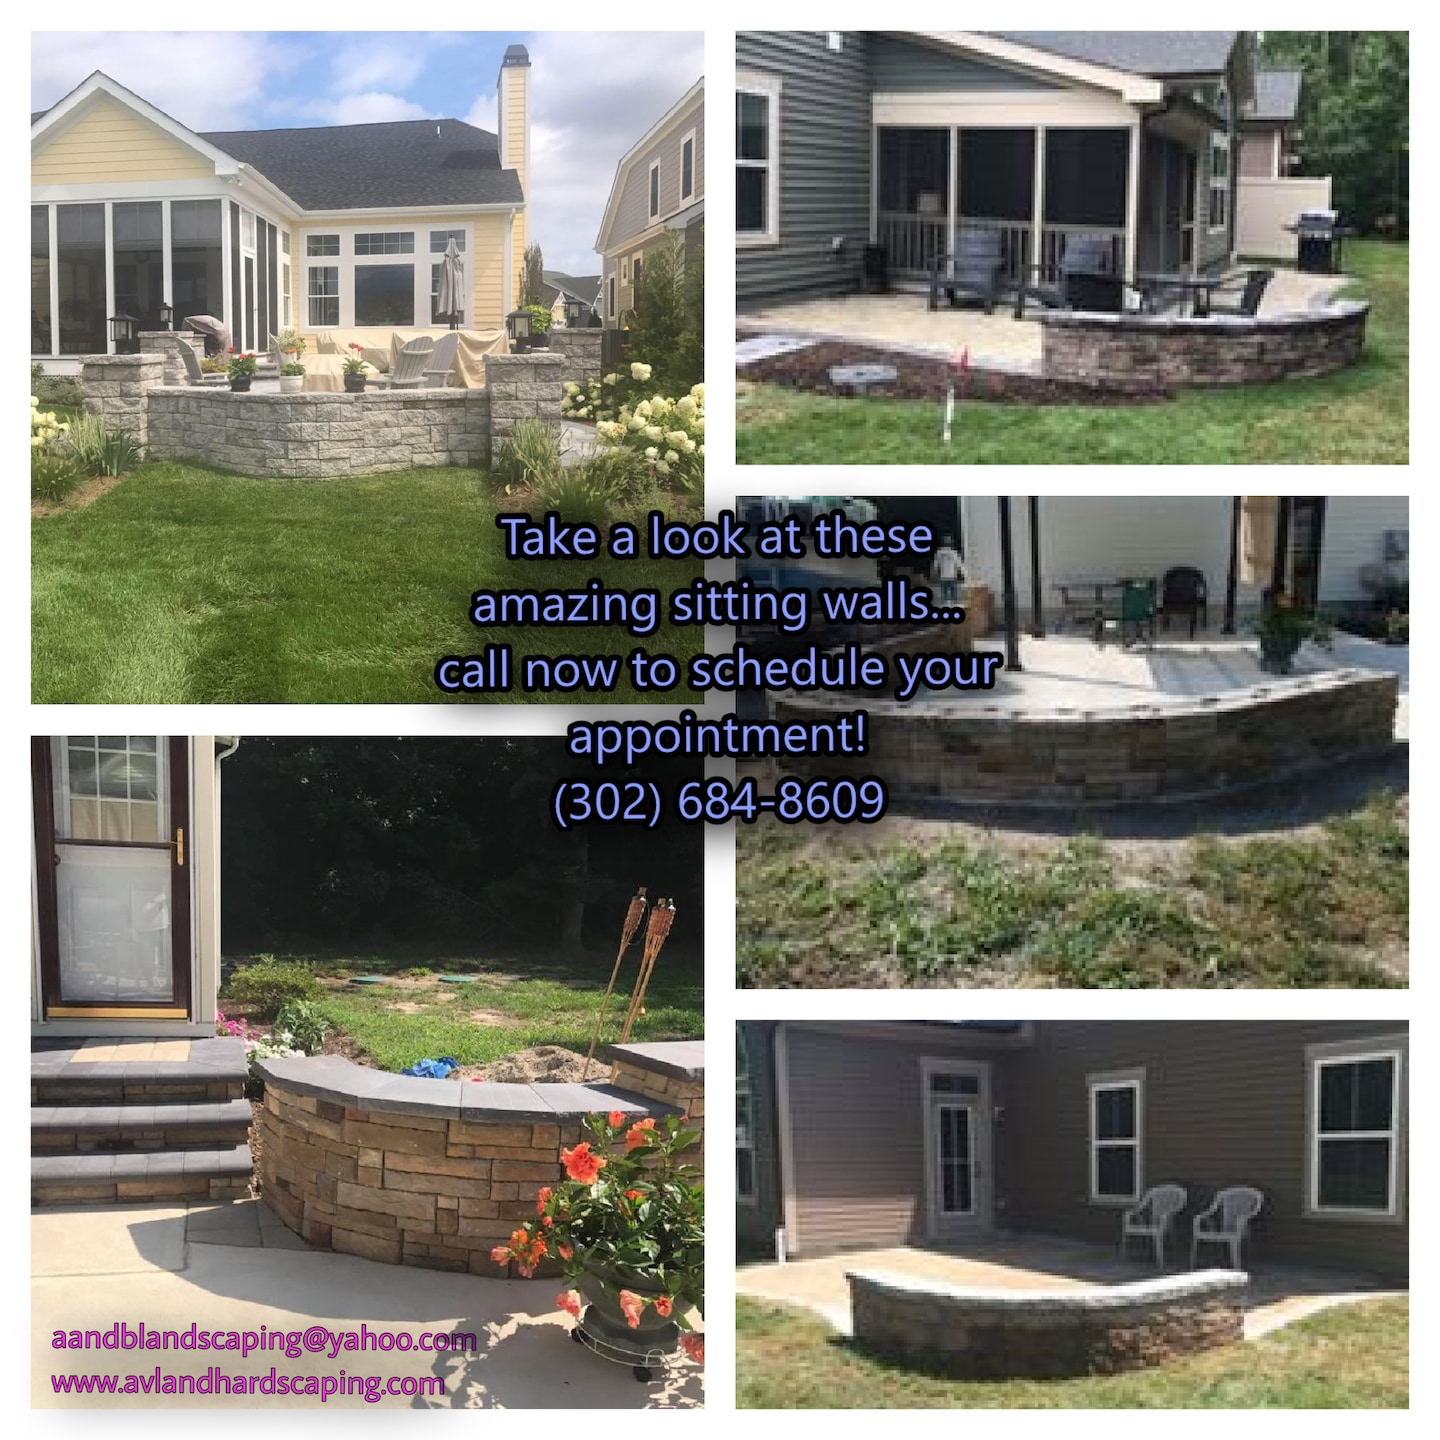 A&V Landscaping and Hardscaping LLC